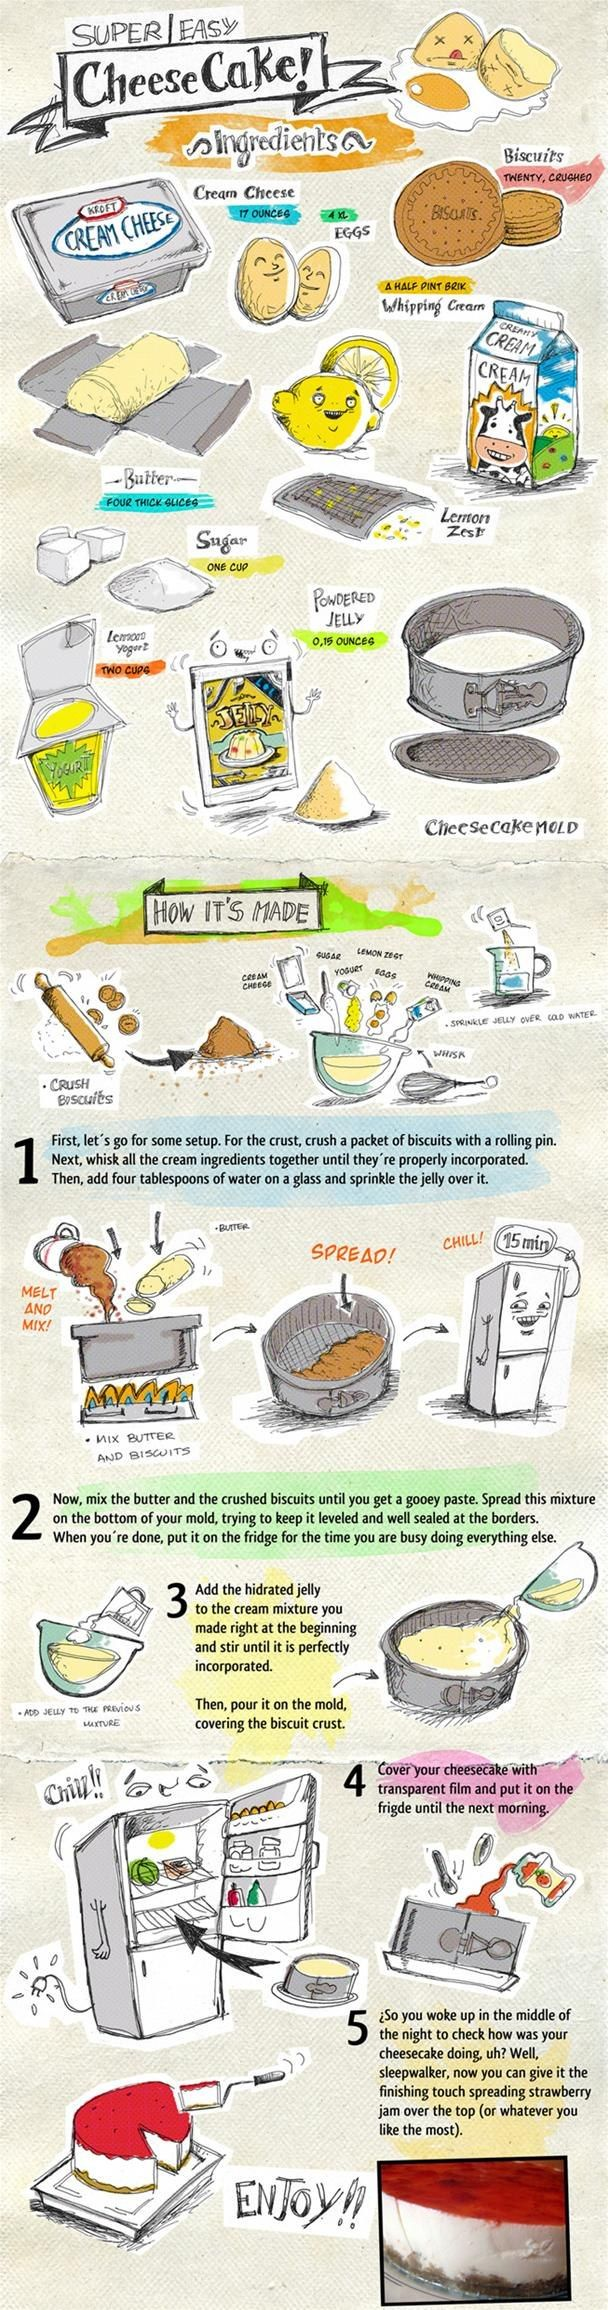 50+ Illustrated Recipes (Make Cooking More Fun!)